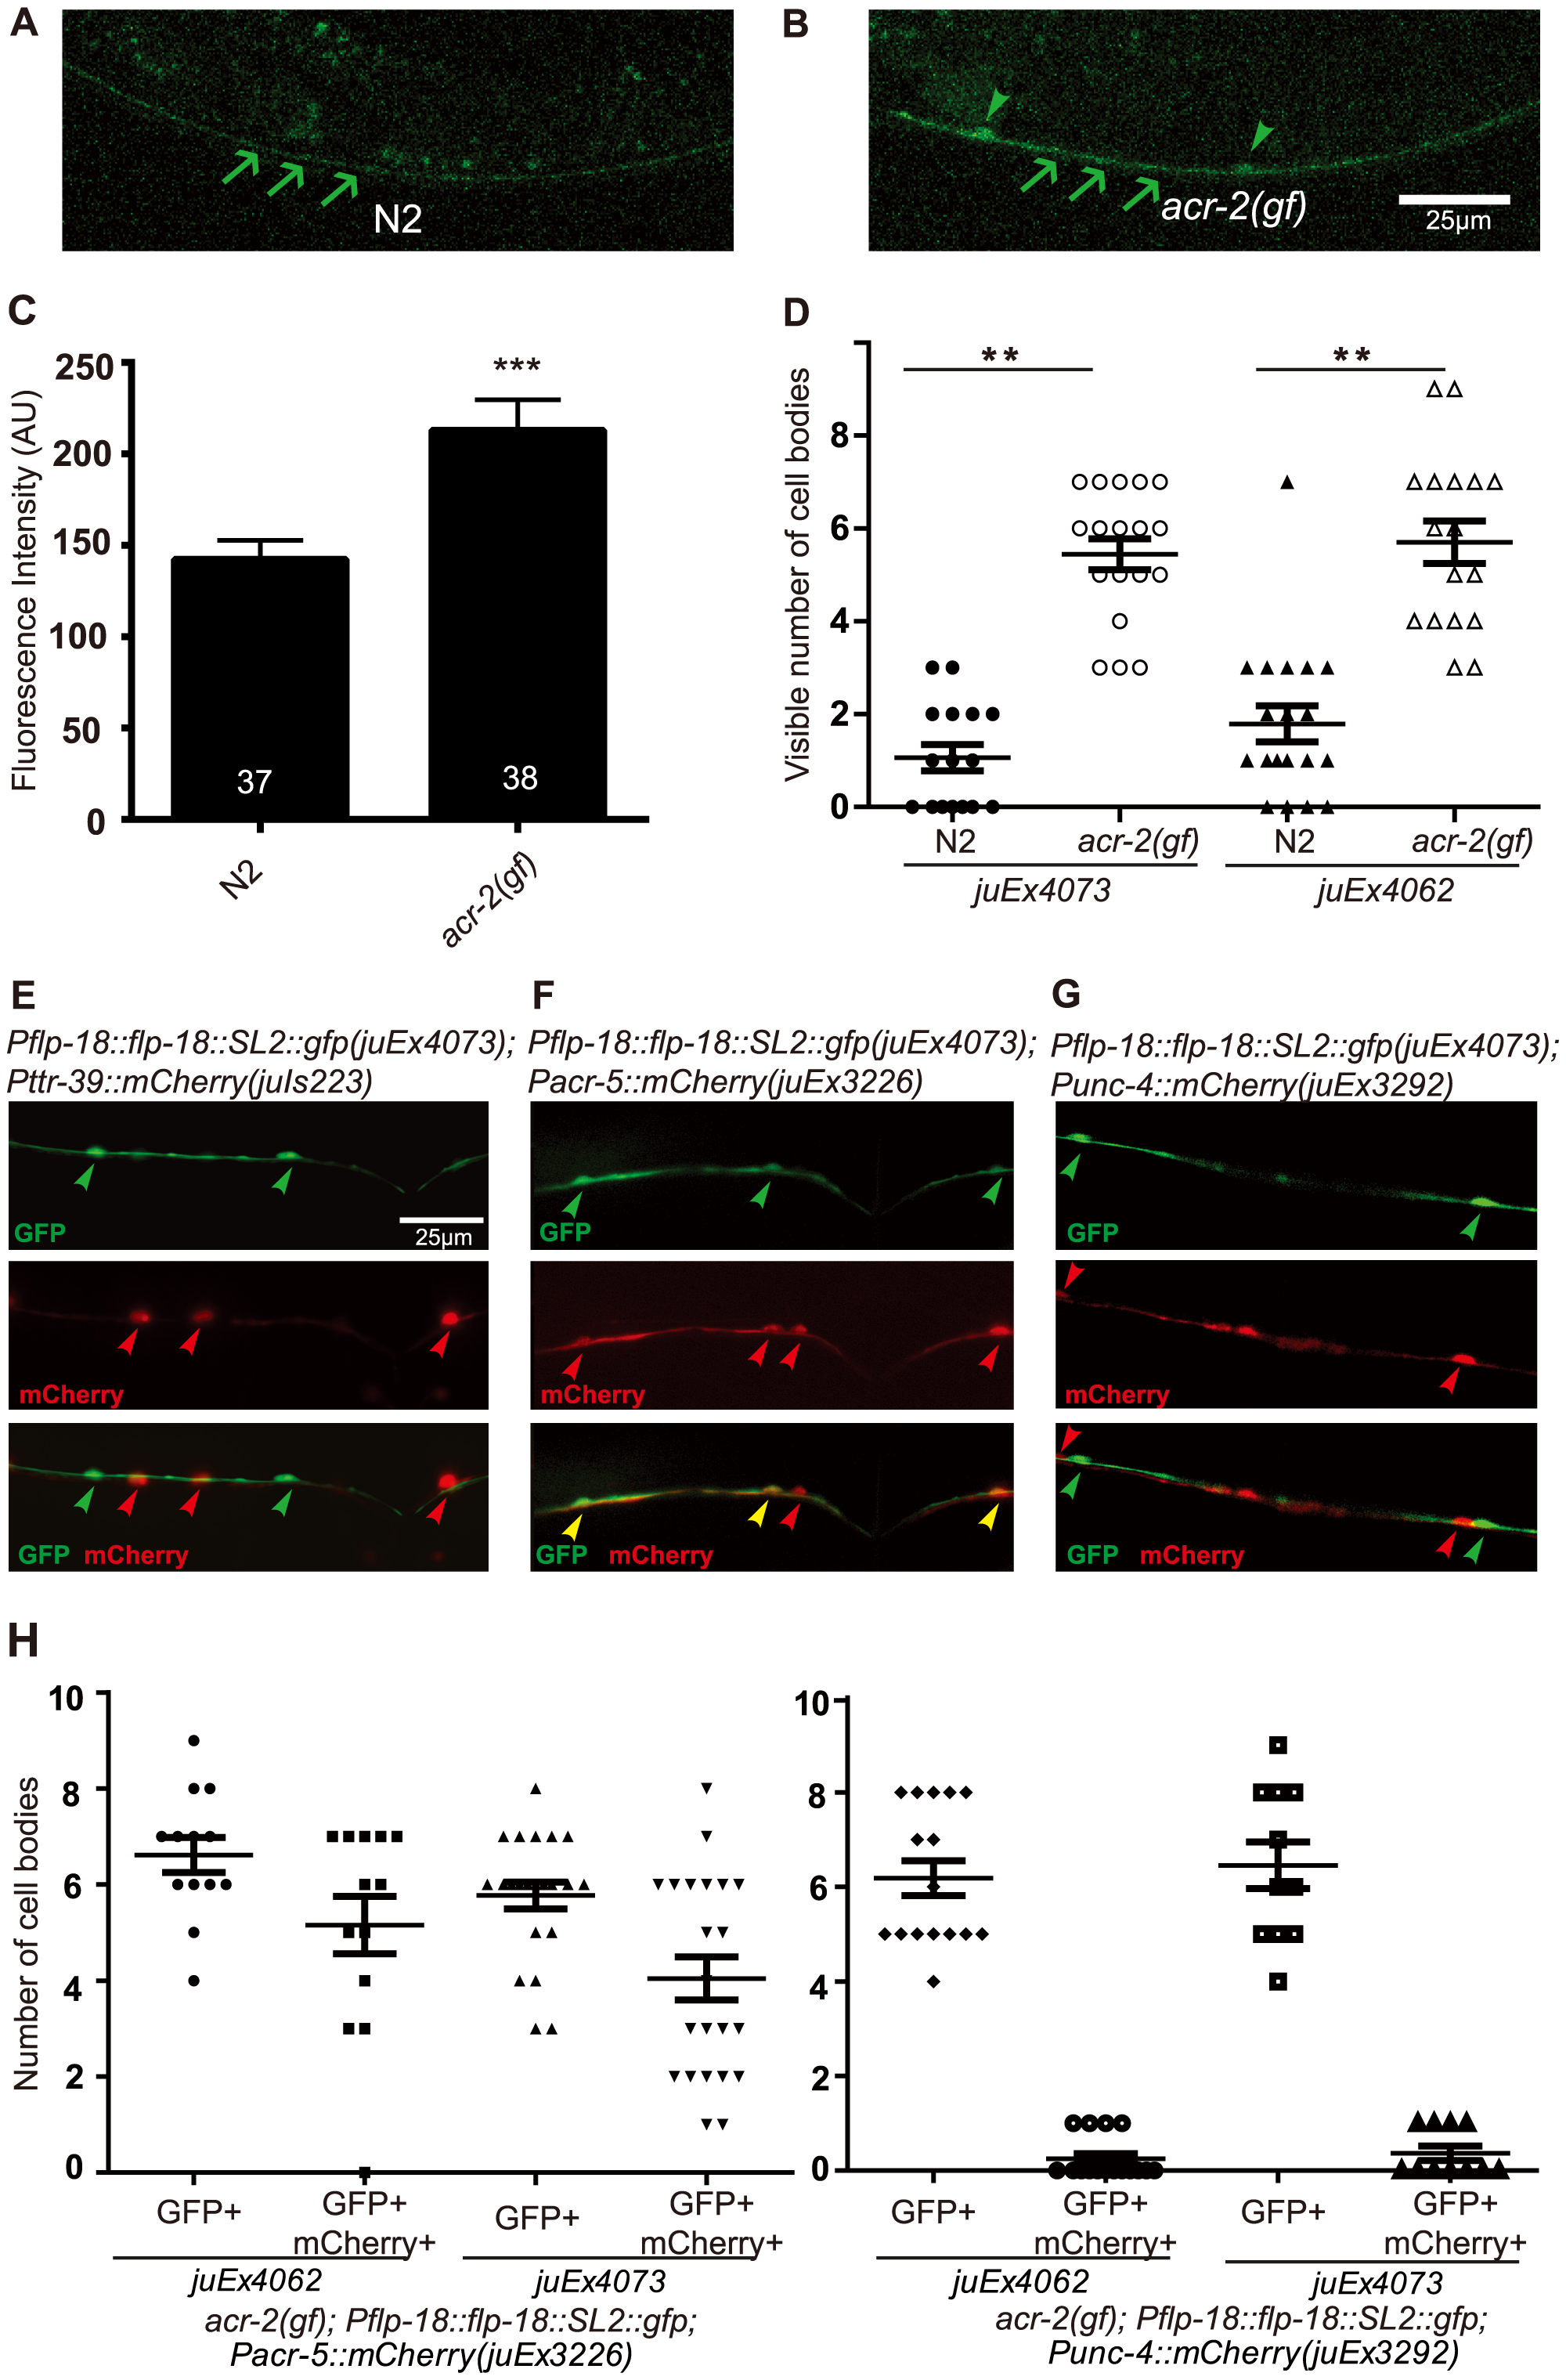 FLP-18 expression is selectively increased in the cholinergic motor neurons in the <i>acr-2(gf)</i> background.